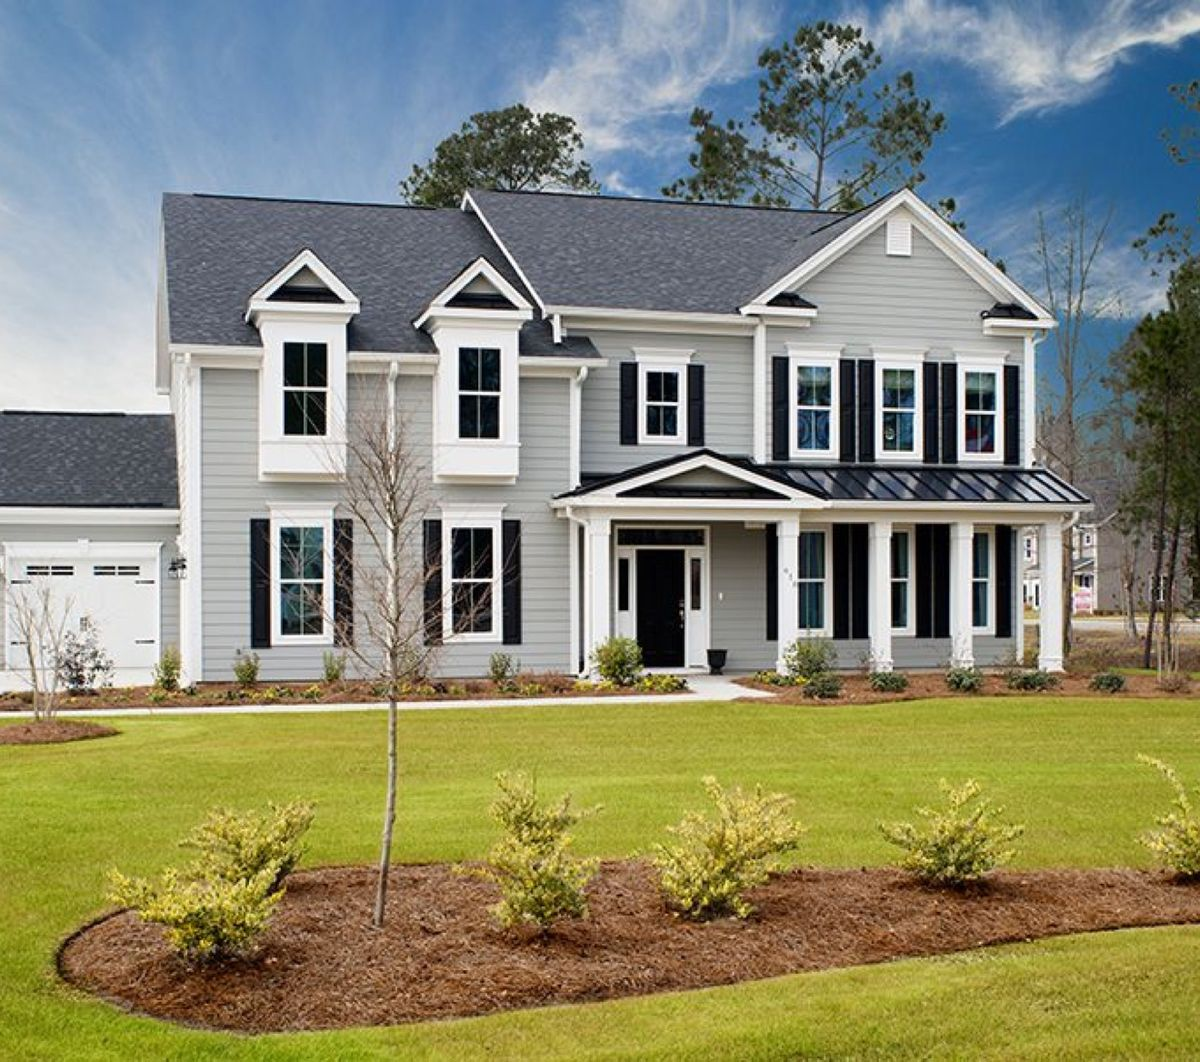 New construction two-story home with large lawn